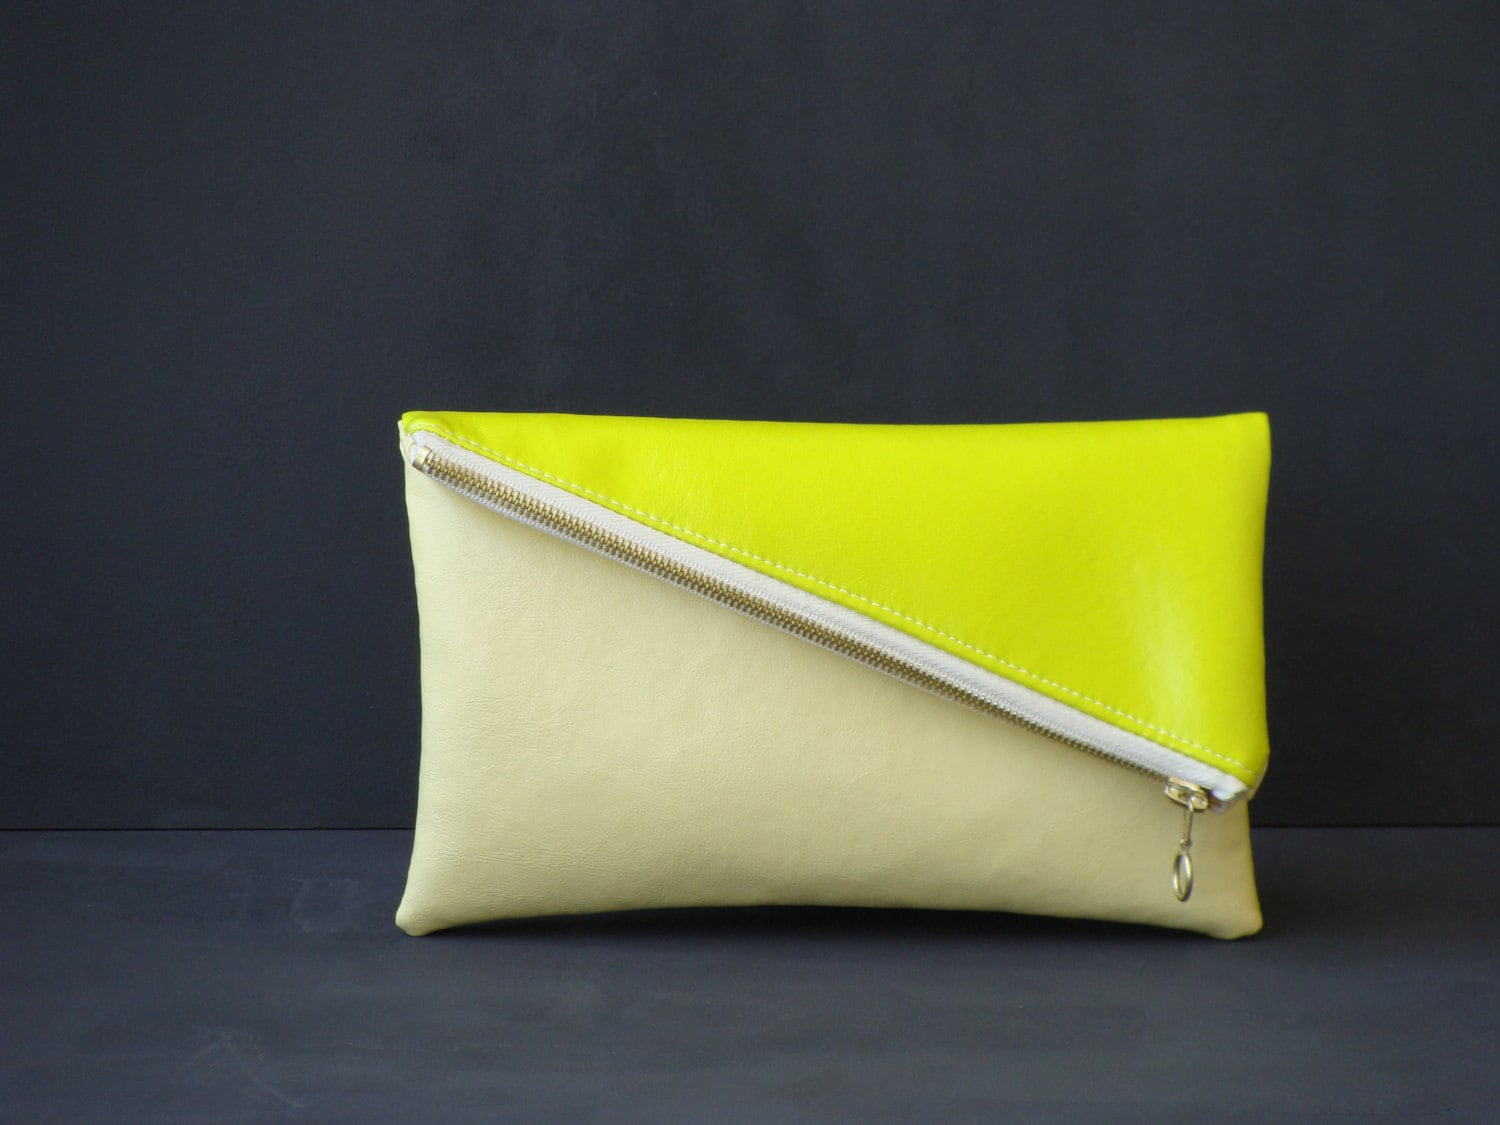 Neon yellow leather clutch fold over vegan leather clutch bag etsy jpg  1500x1125 Neon yellow clutch c79fec86e4955